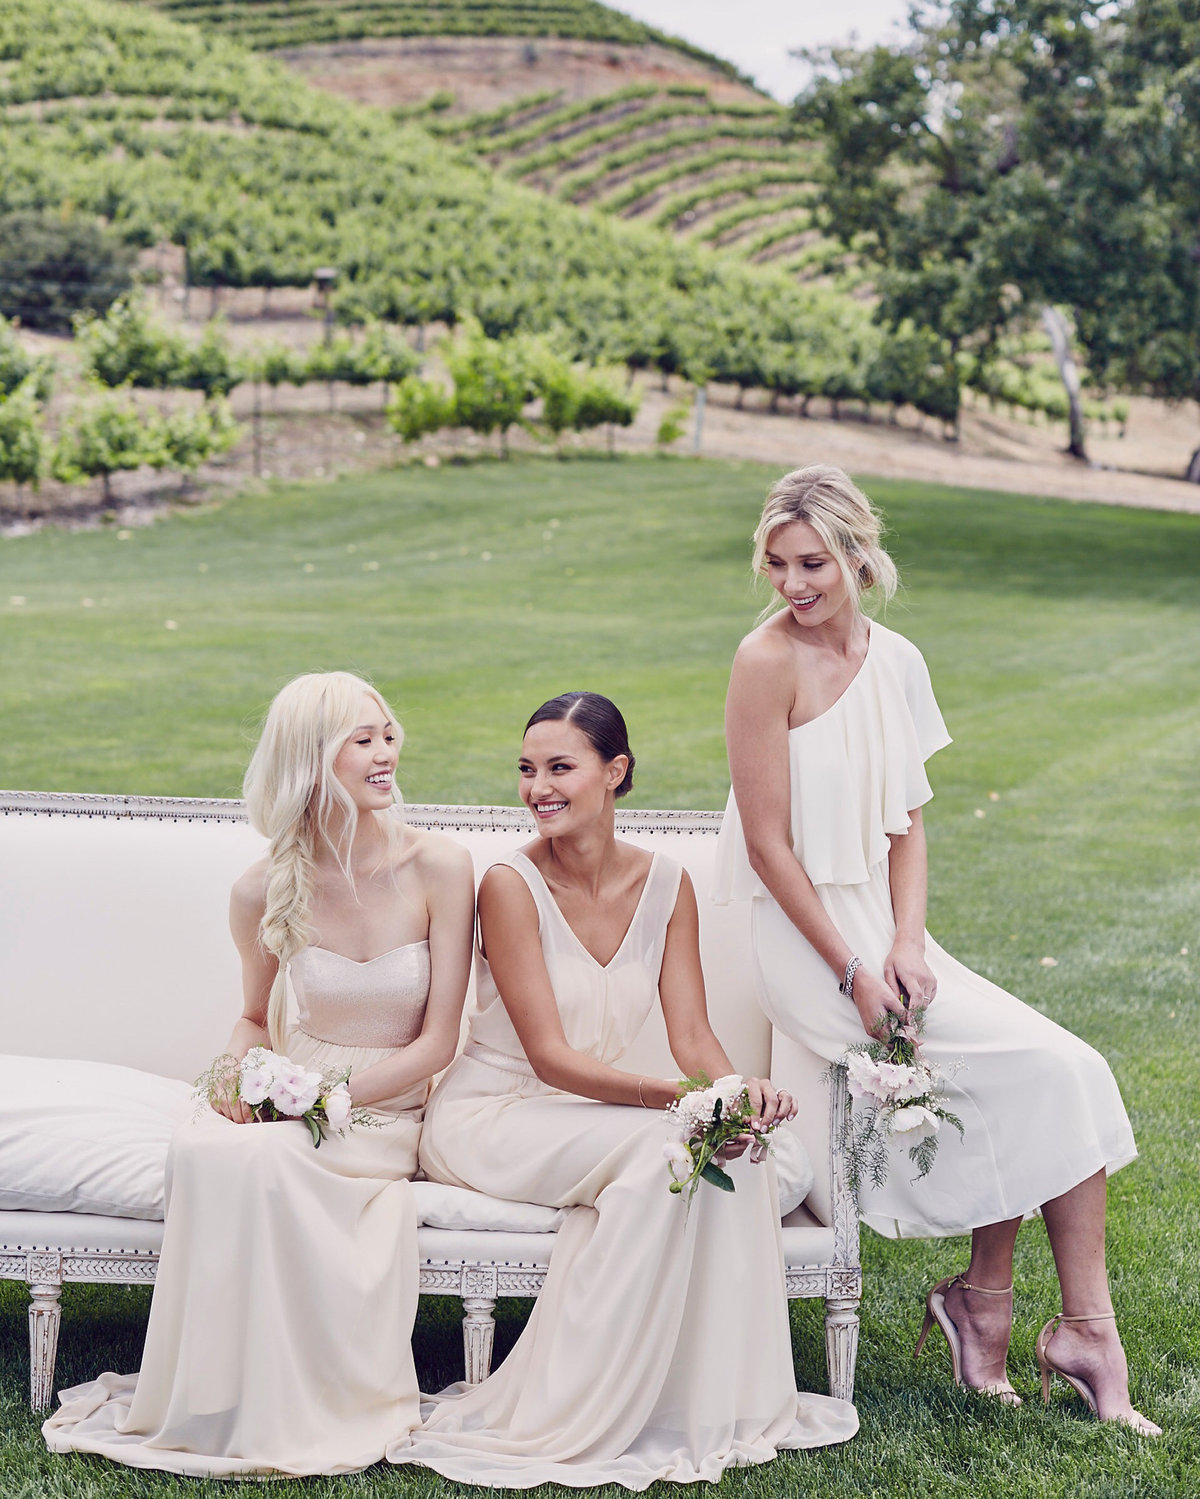 Stunning Wedding Photos_Valorie Darling Photography-7664